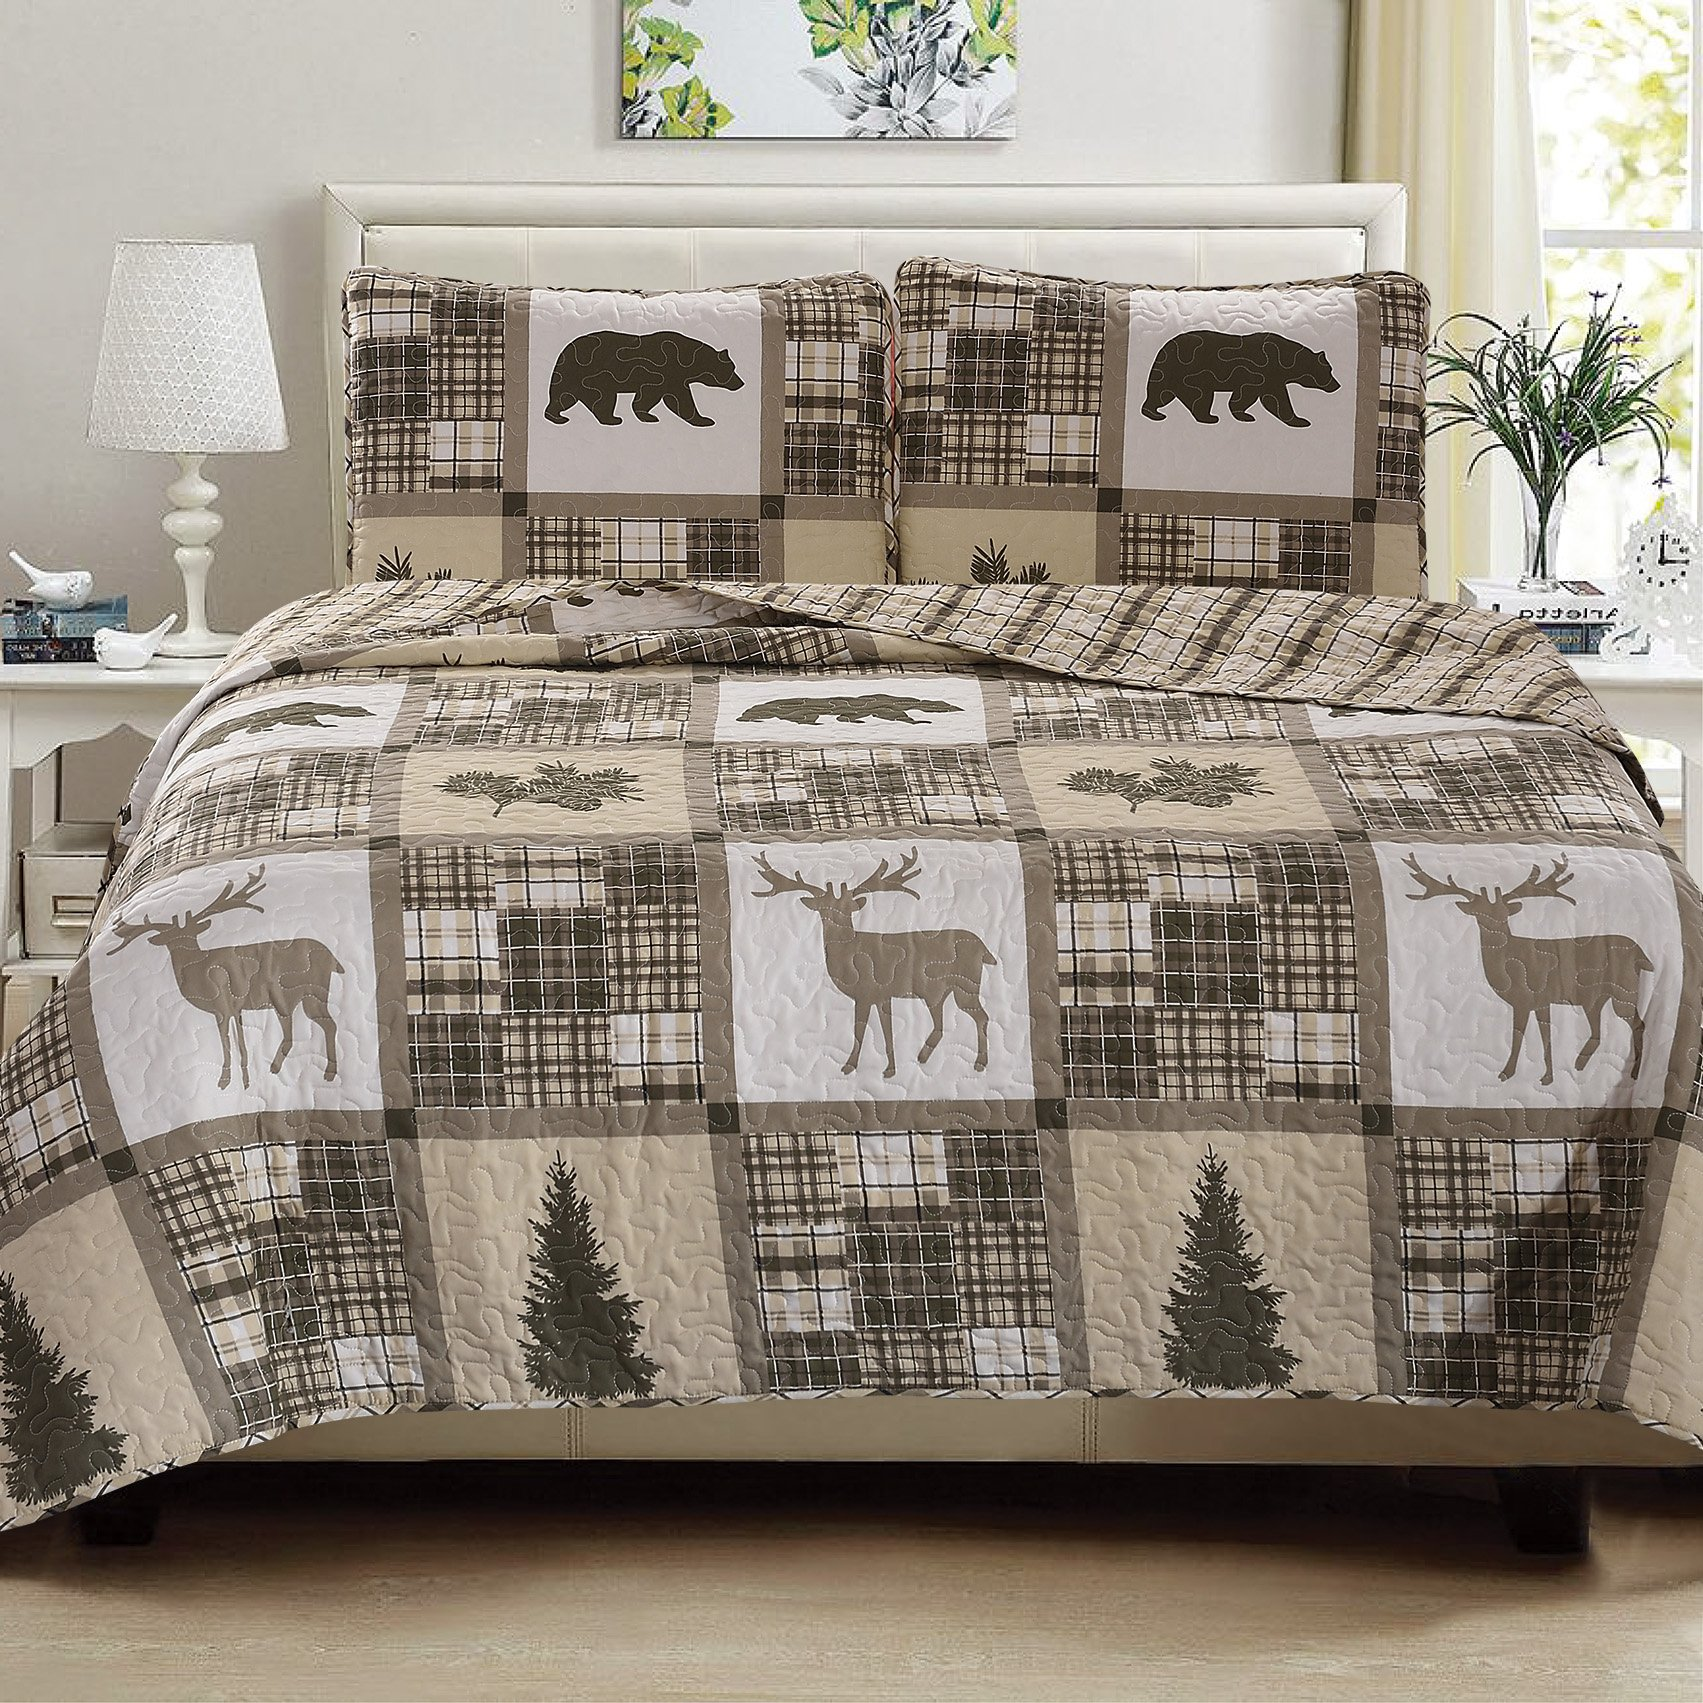 Great Bay Home 3-Piece Lodge Quilt Set with Shams. Durable Cabin Bedspread and Shams with Rustic Printed Pattern. Stonehurst Collection By Brand. (King)